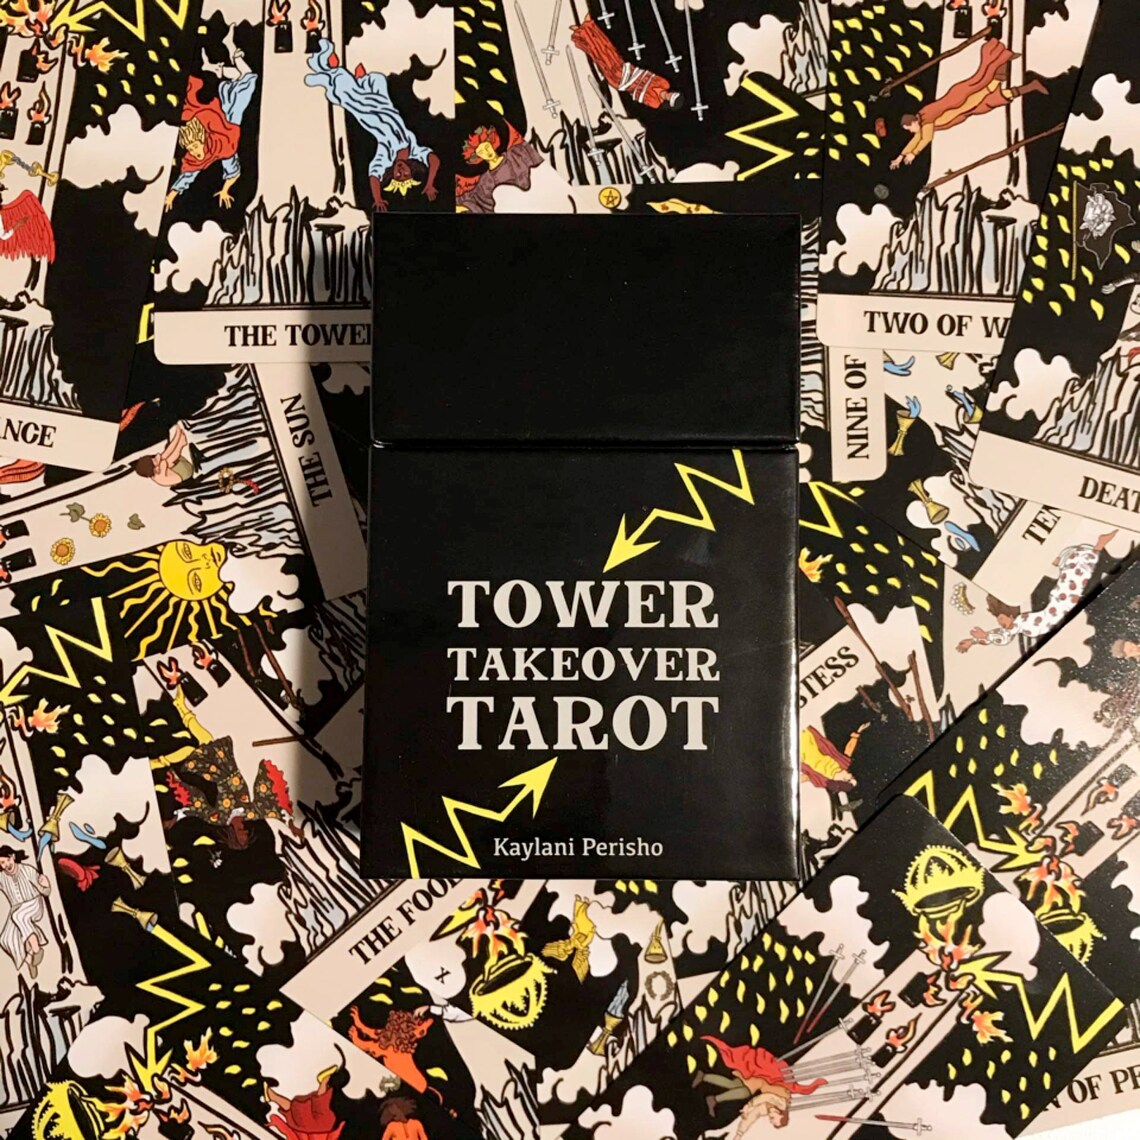 Tower Takeover Tarot